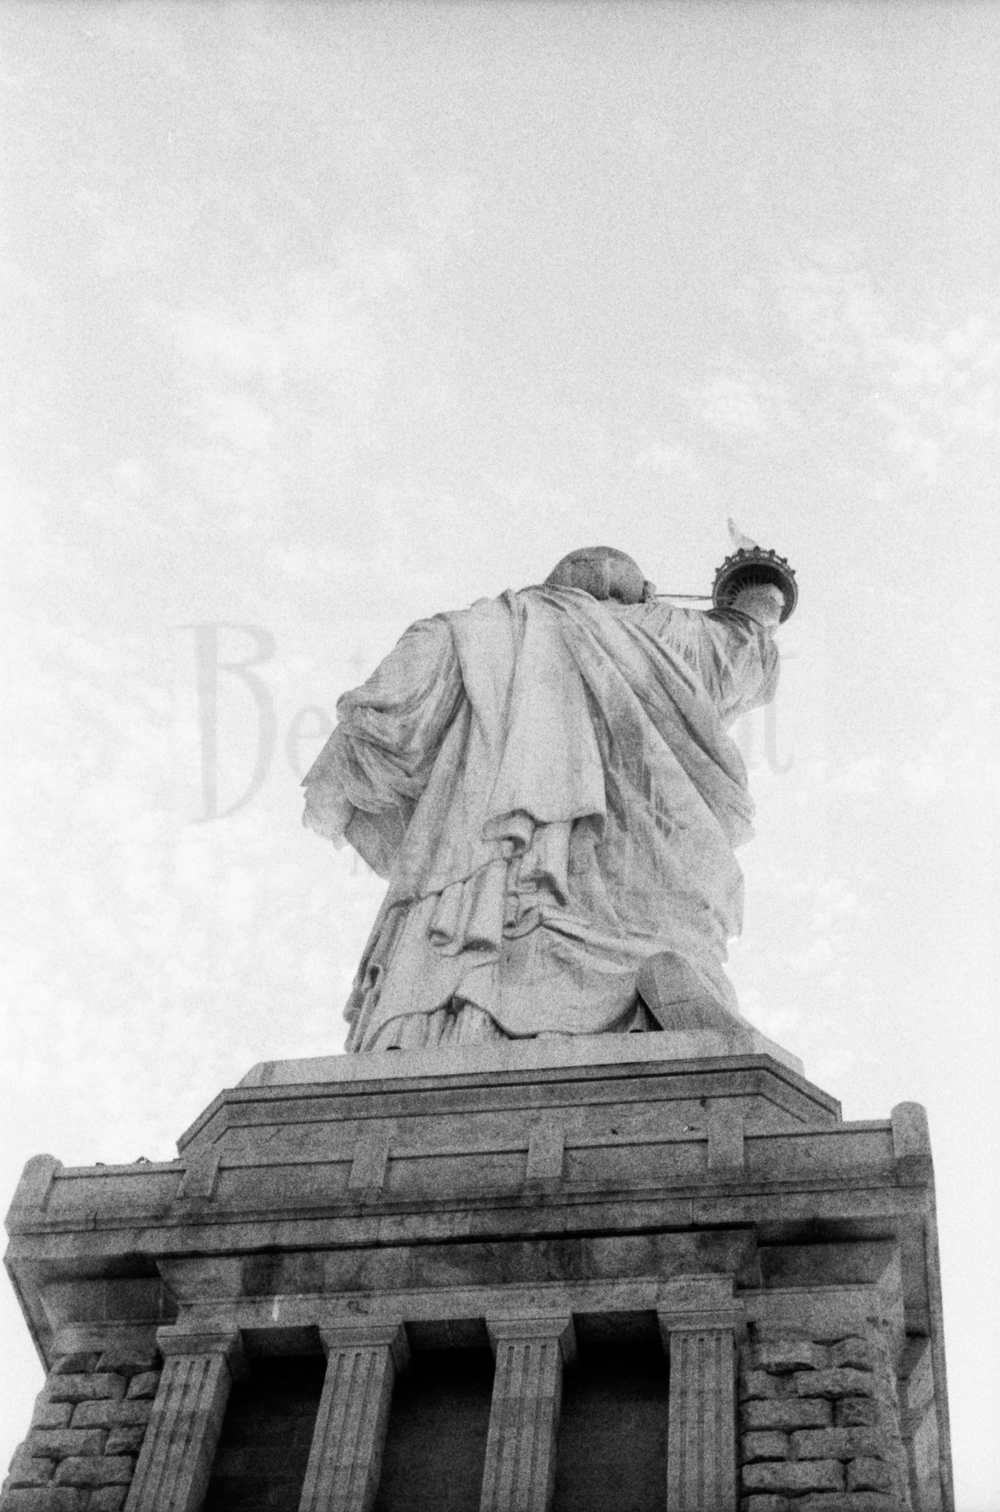 Fuji Neopan ISO 400 Pushed to 1600 -Statue of Liberty & Old Town Alexandria_20151001-22.jpg